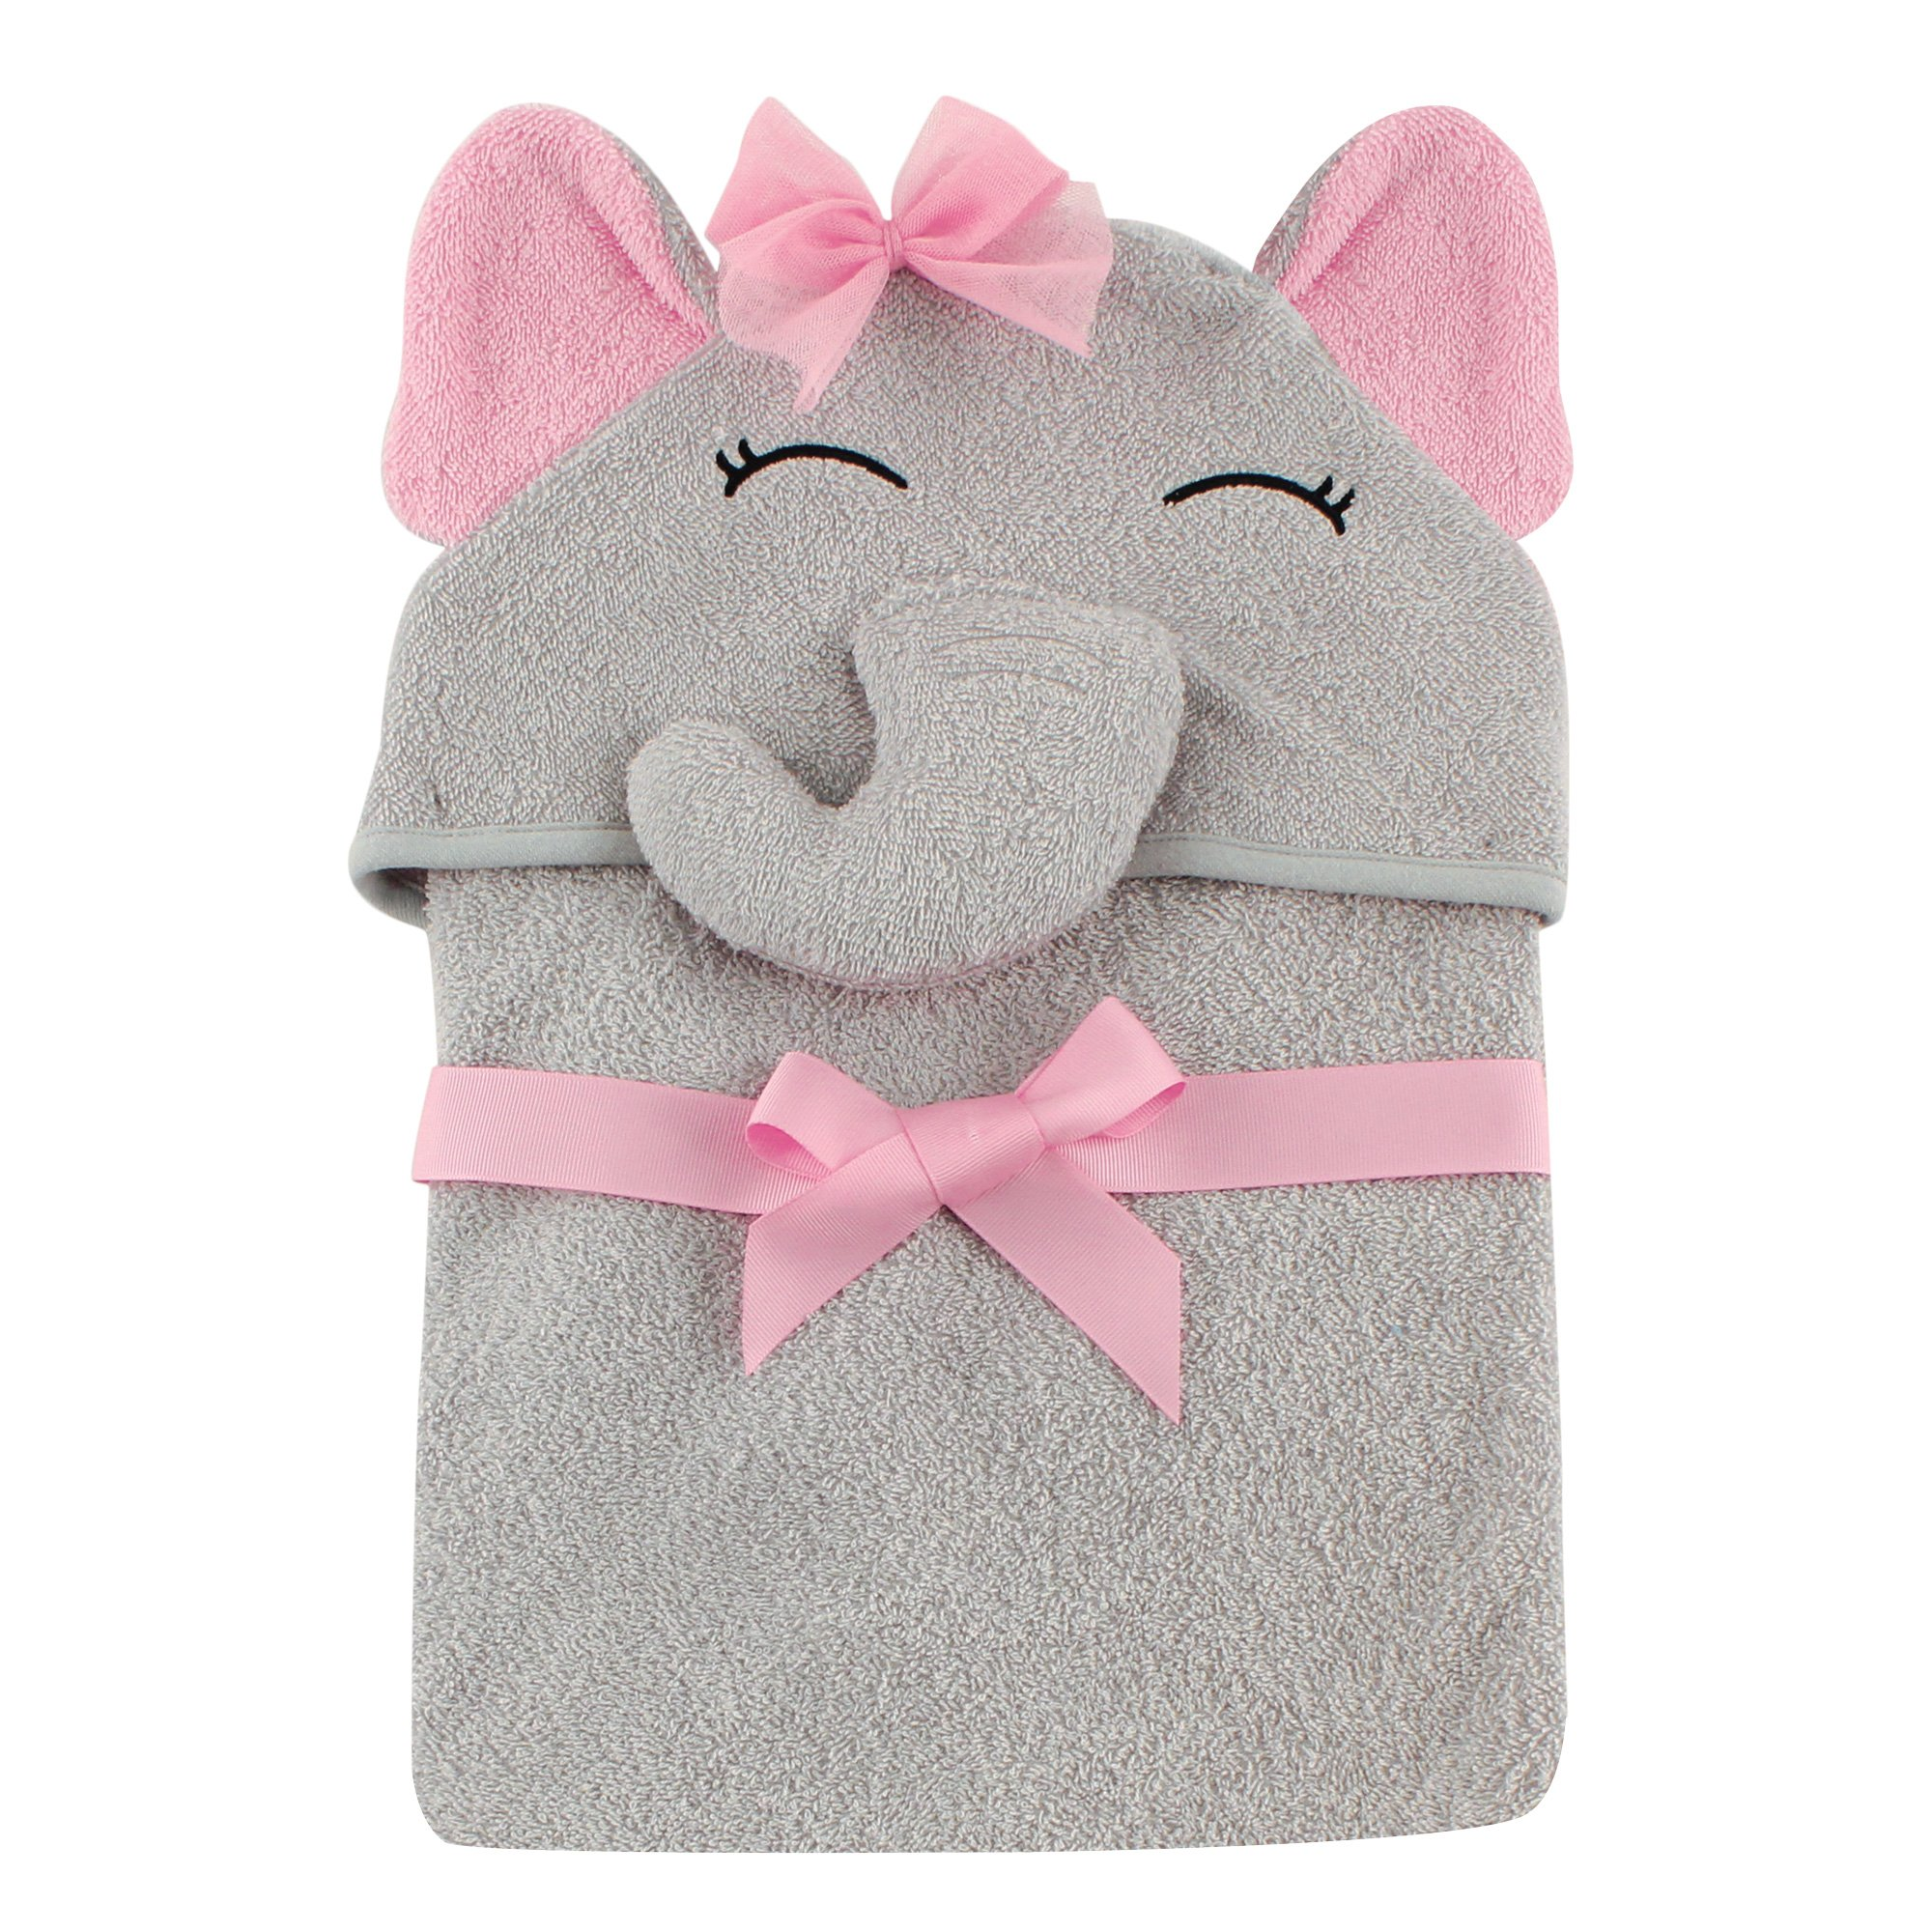 Hudson Baby Animal Face Hooded Towel, Girl Elephant by Hudson Baby (Image #3)